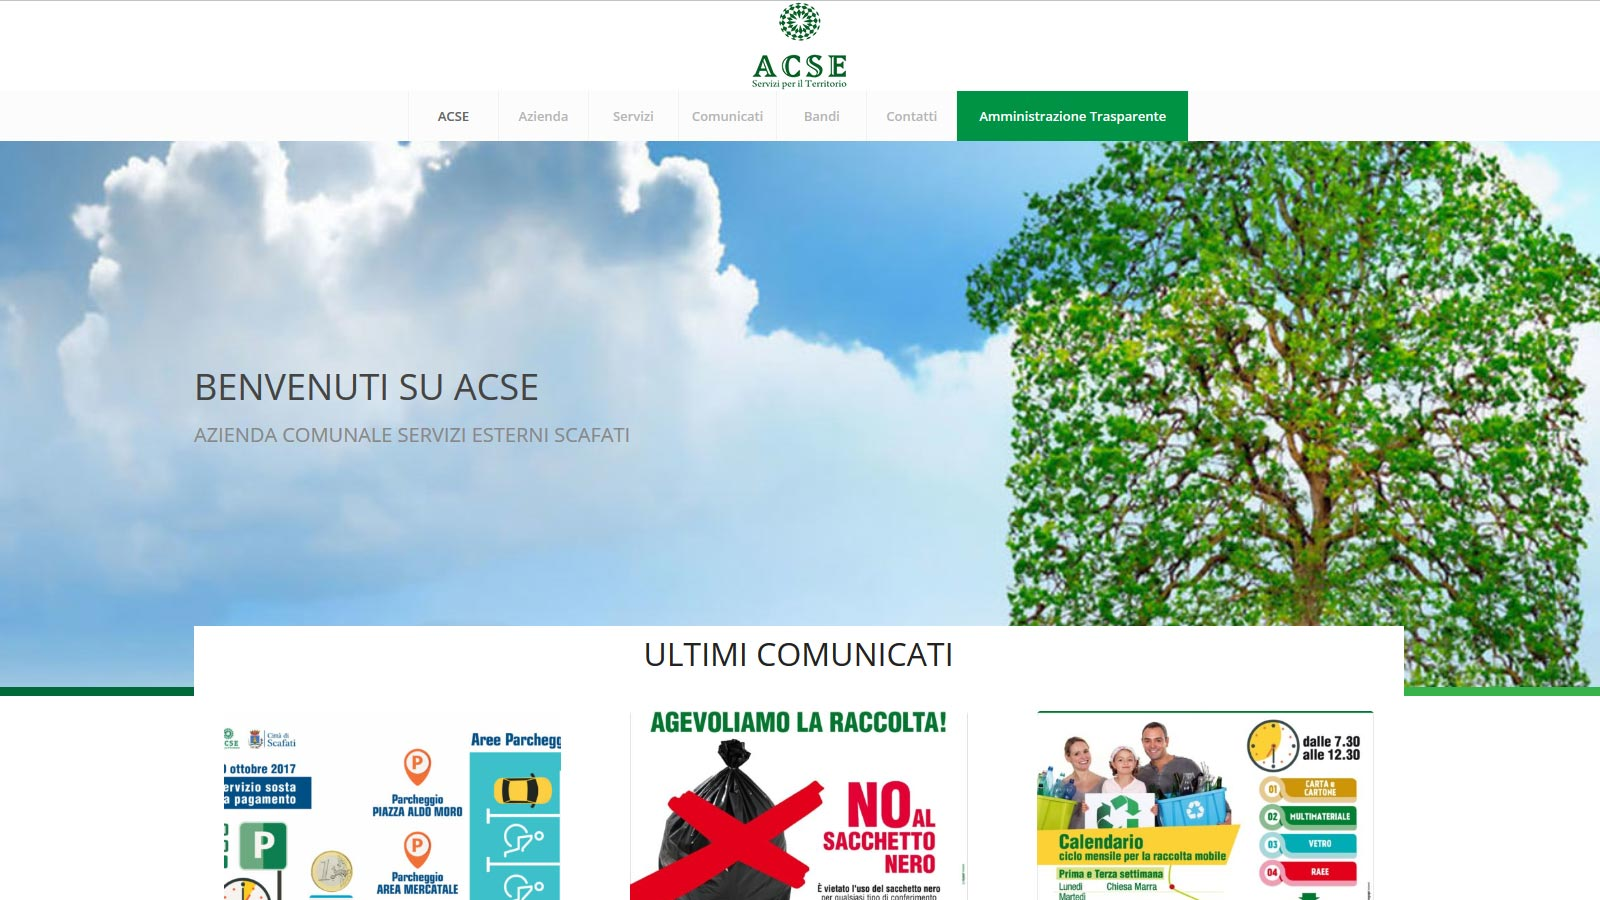 www.acsespa.it